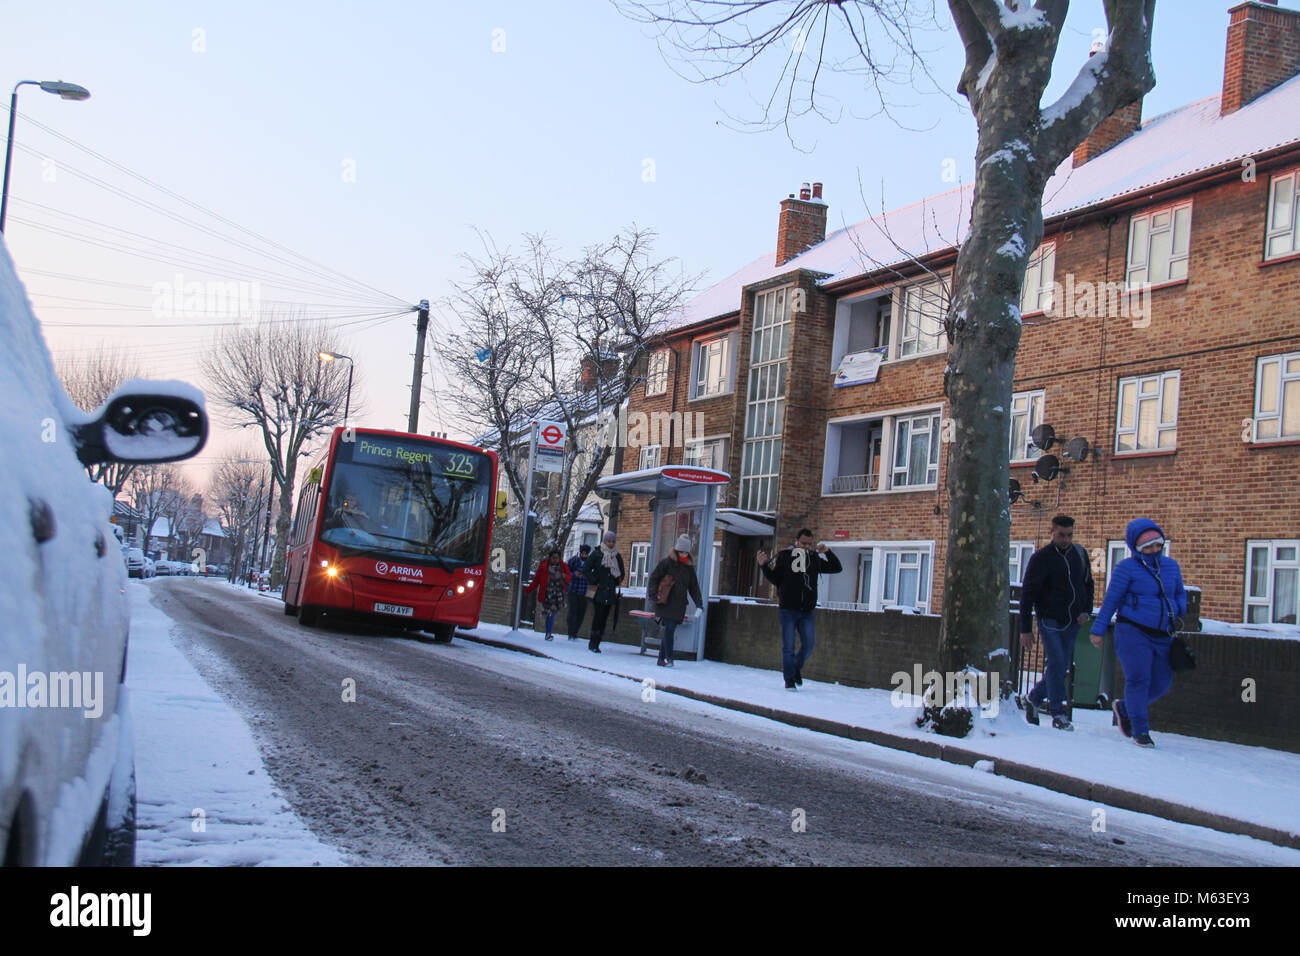 LONDON, UK - February 28:  A bus seen by a bus stop as streets of East London were covered with snow following a - Stock Image